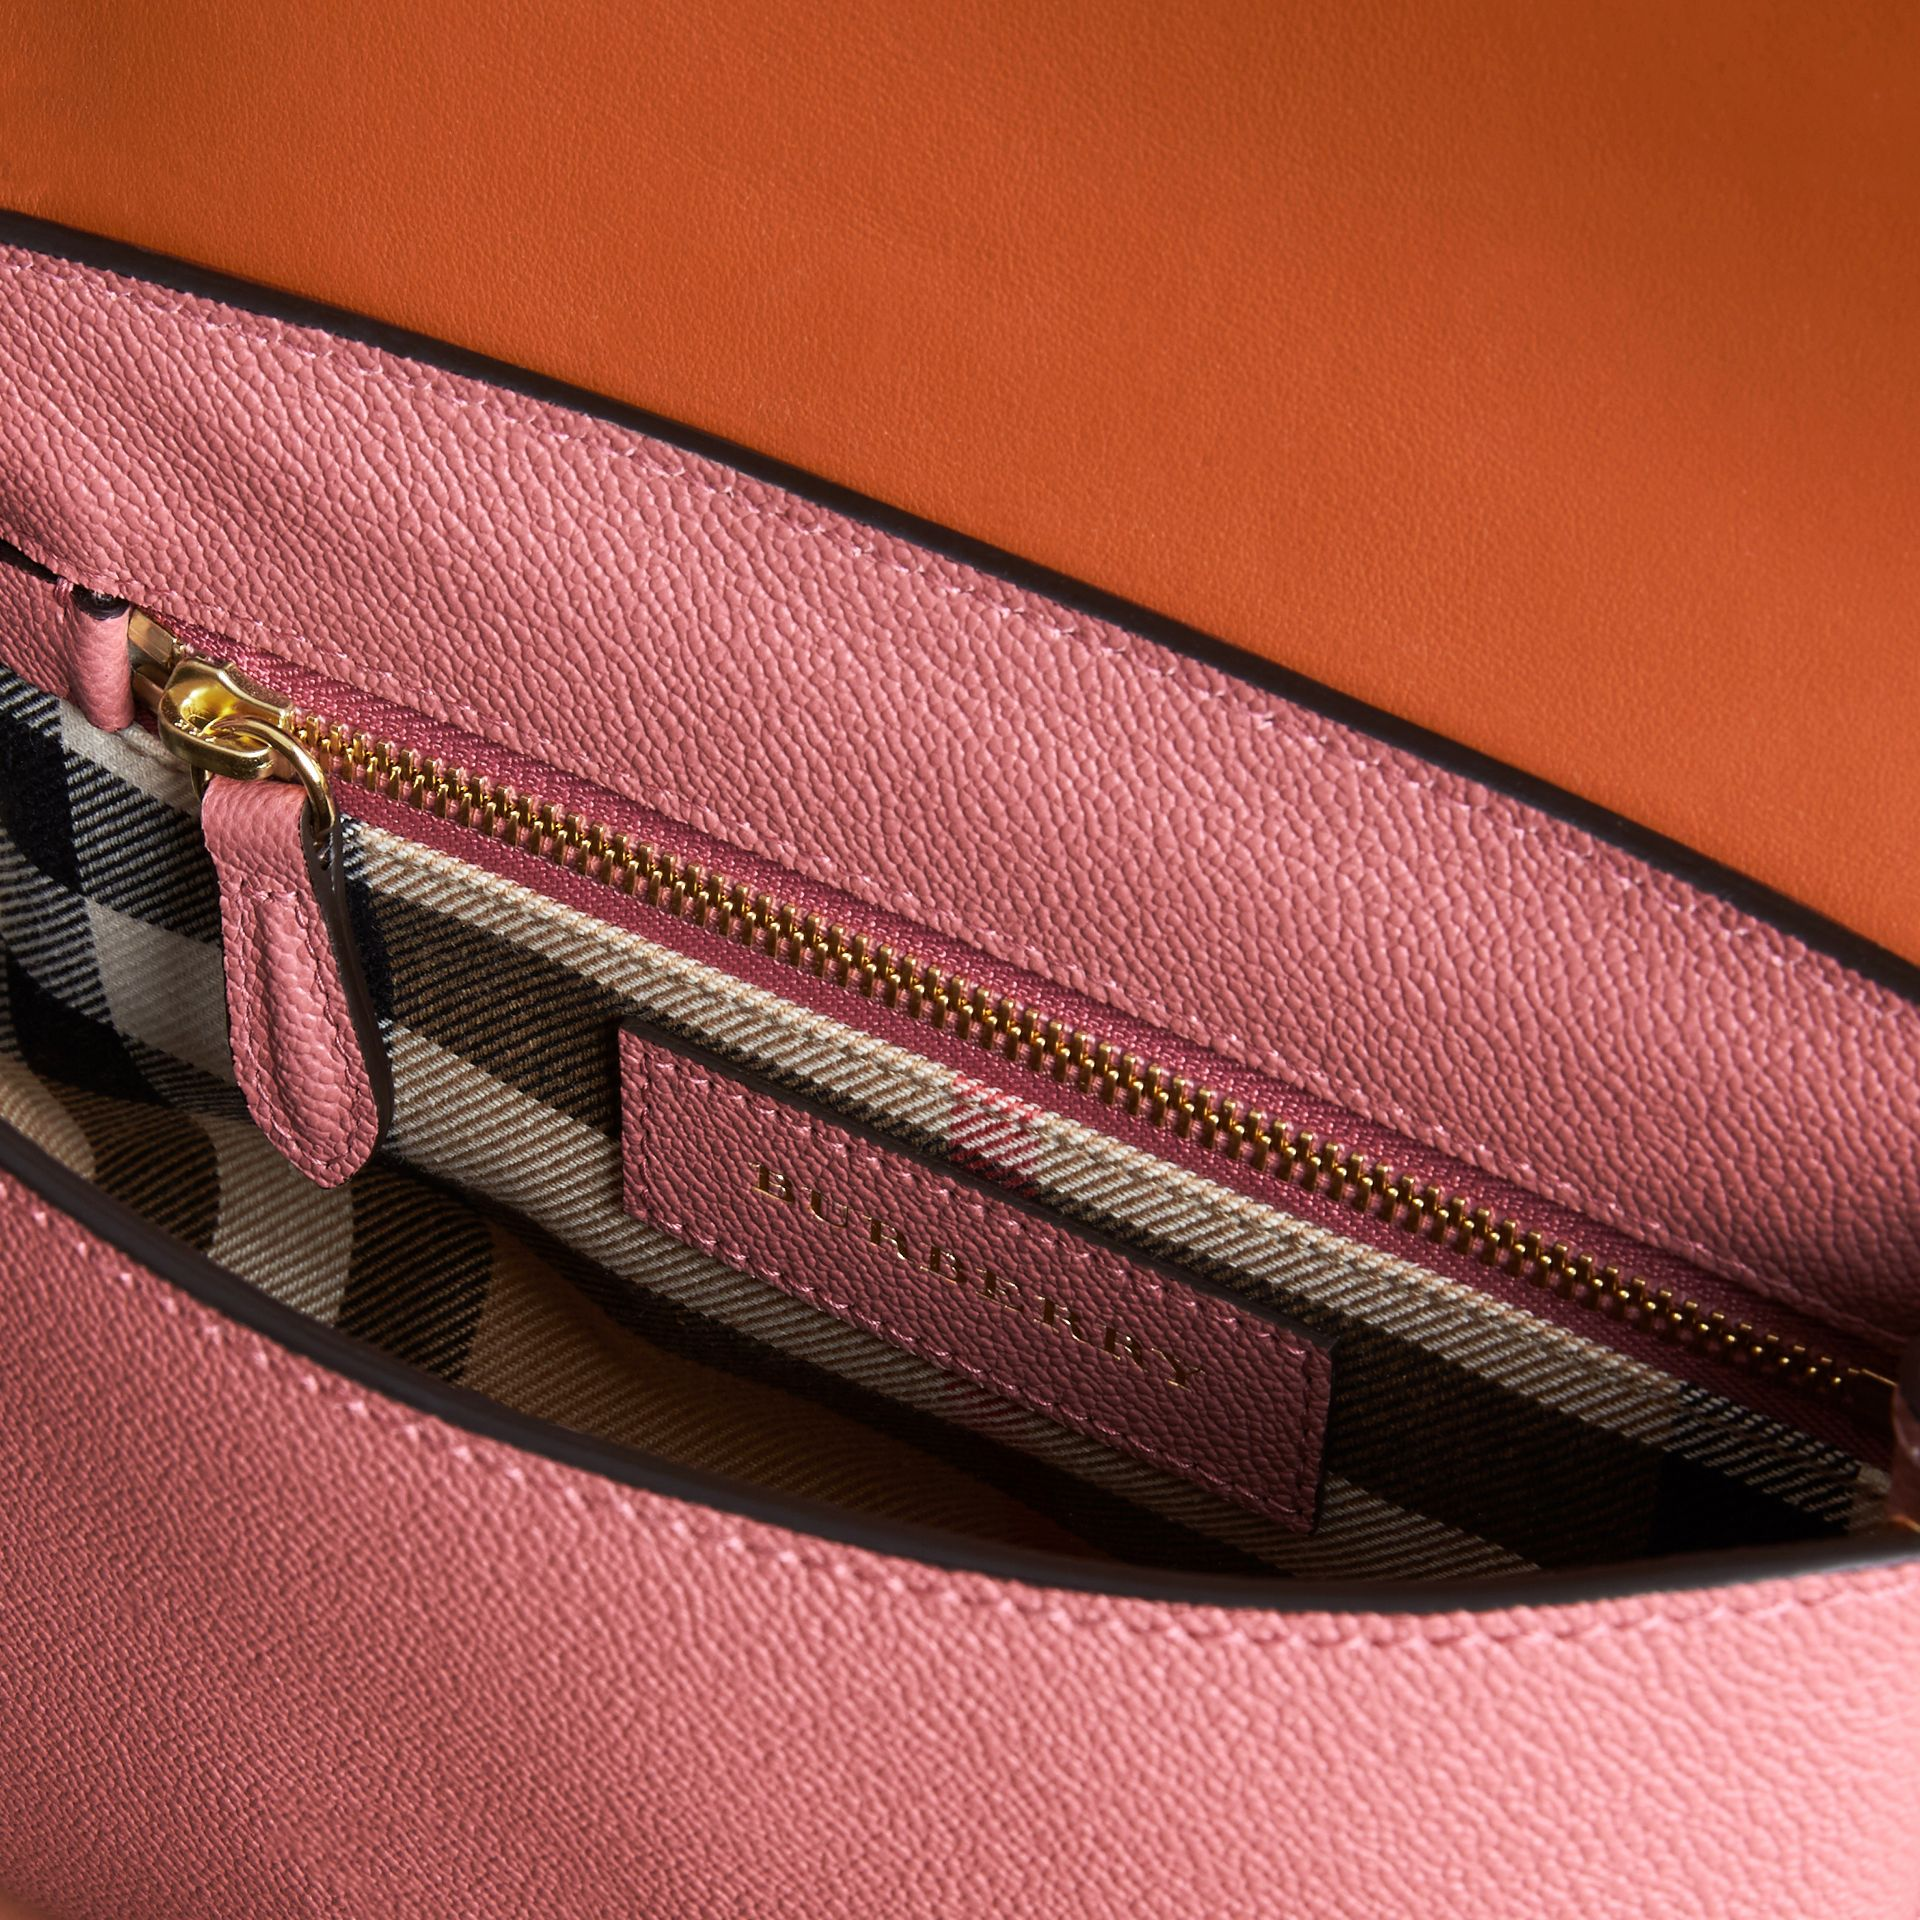 The Buckle Crossbody Bag in Trompe L'oeil Leather Dusty Pink/bright Toffee - gallery image 5